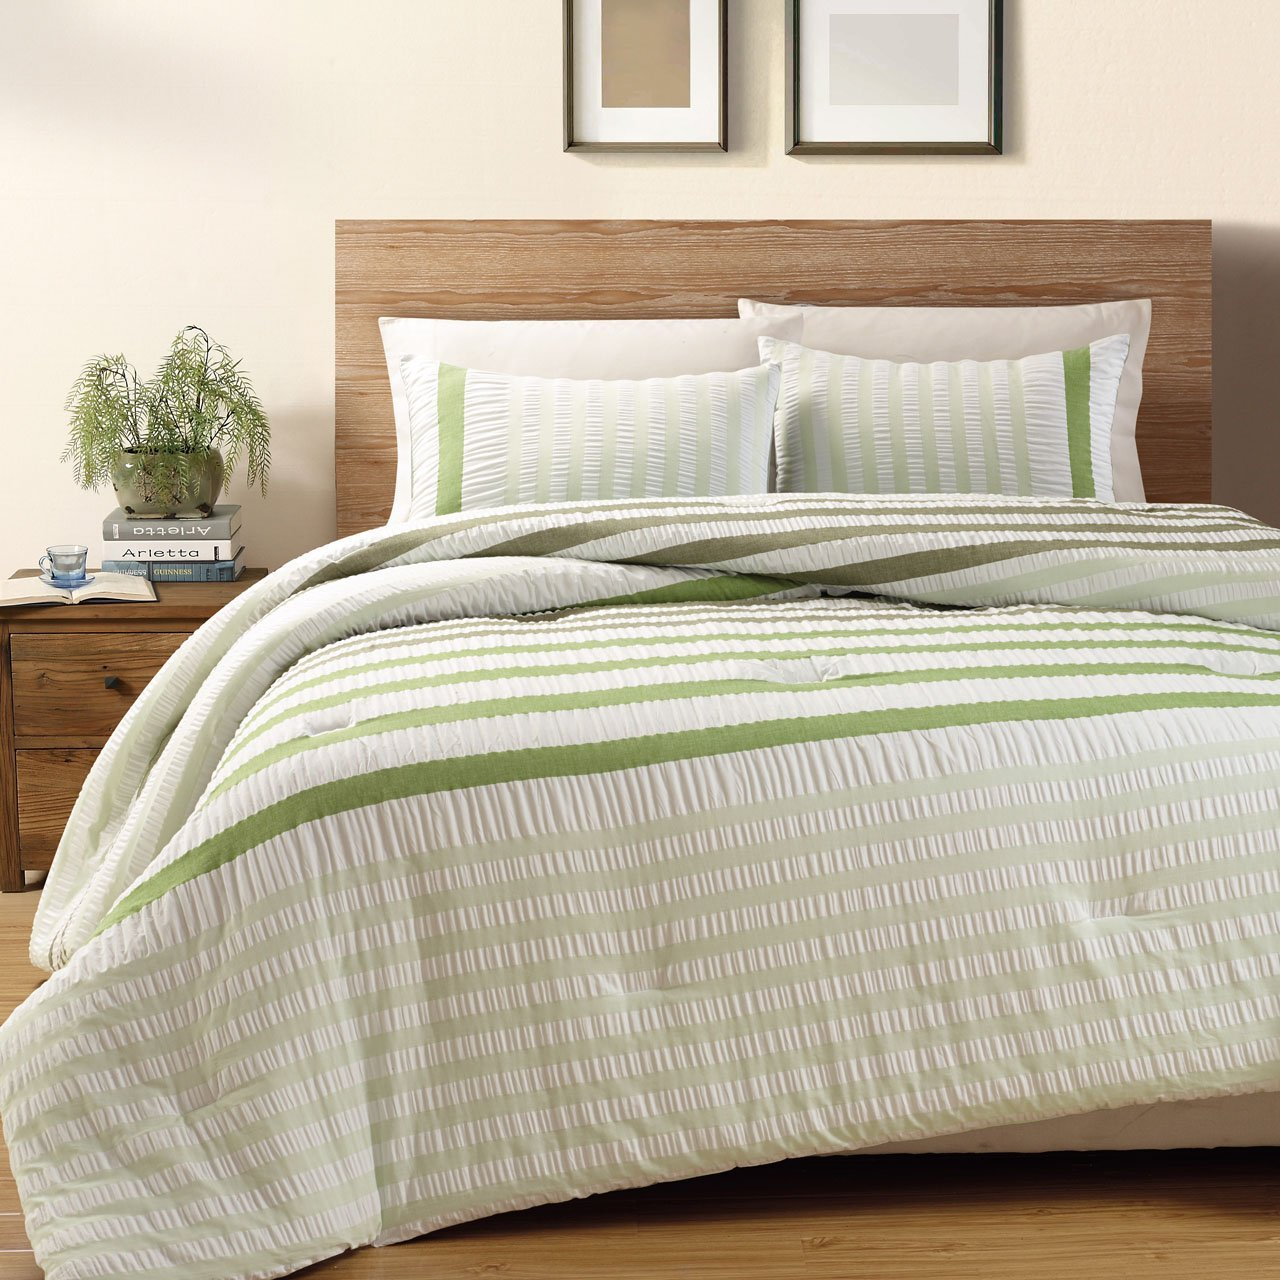 twin and target queen comforter sets king grey white green interior purple gray